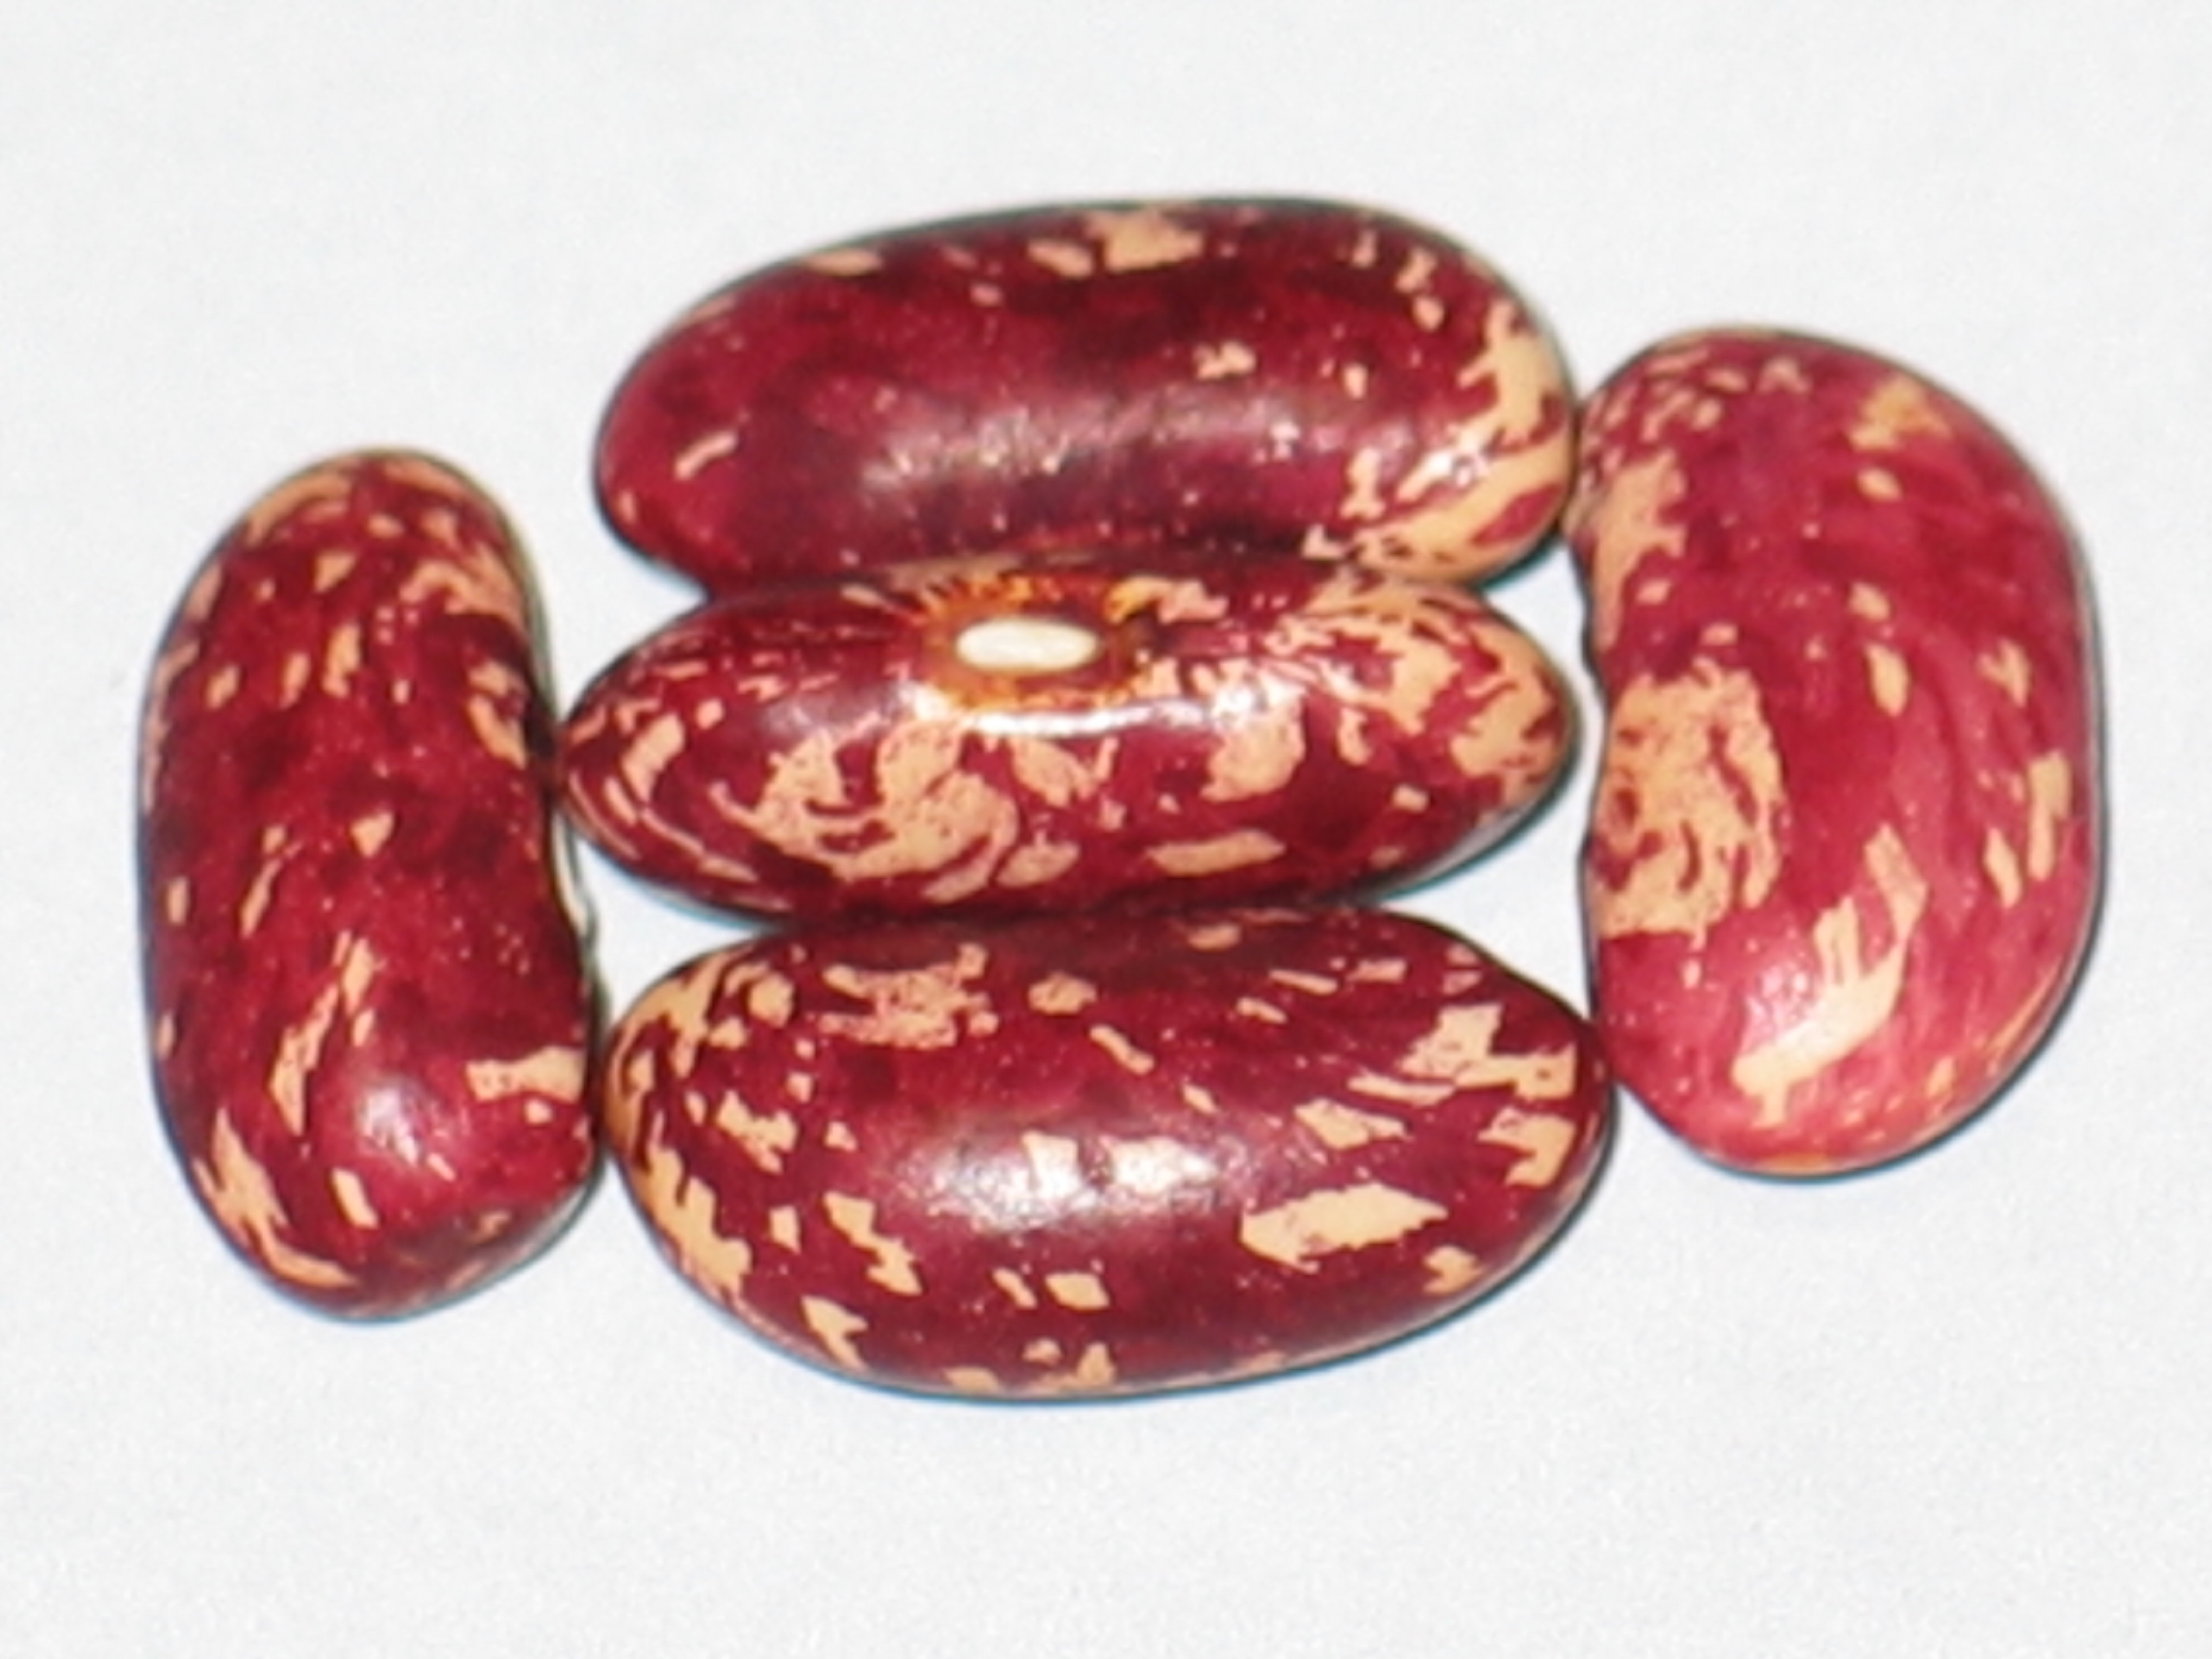 image of Longfellow beans